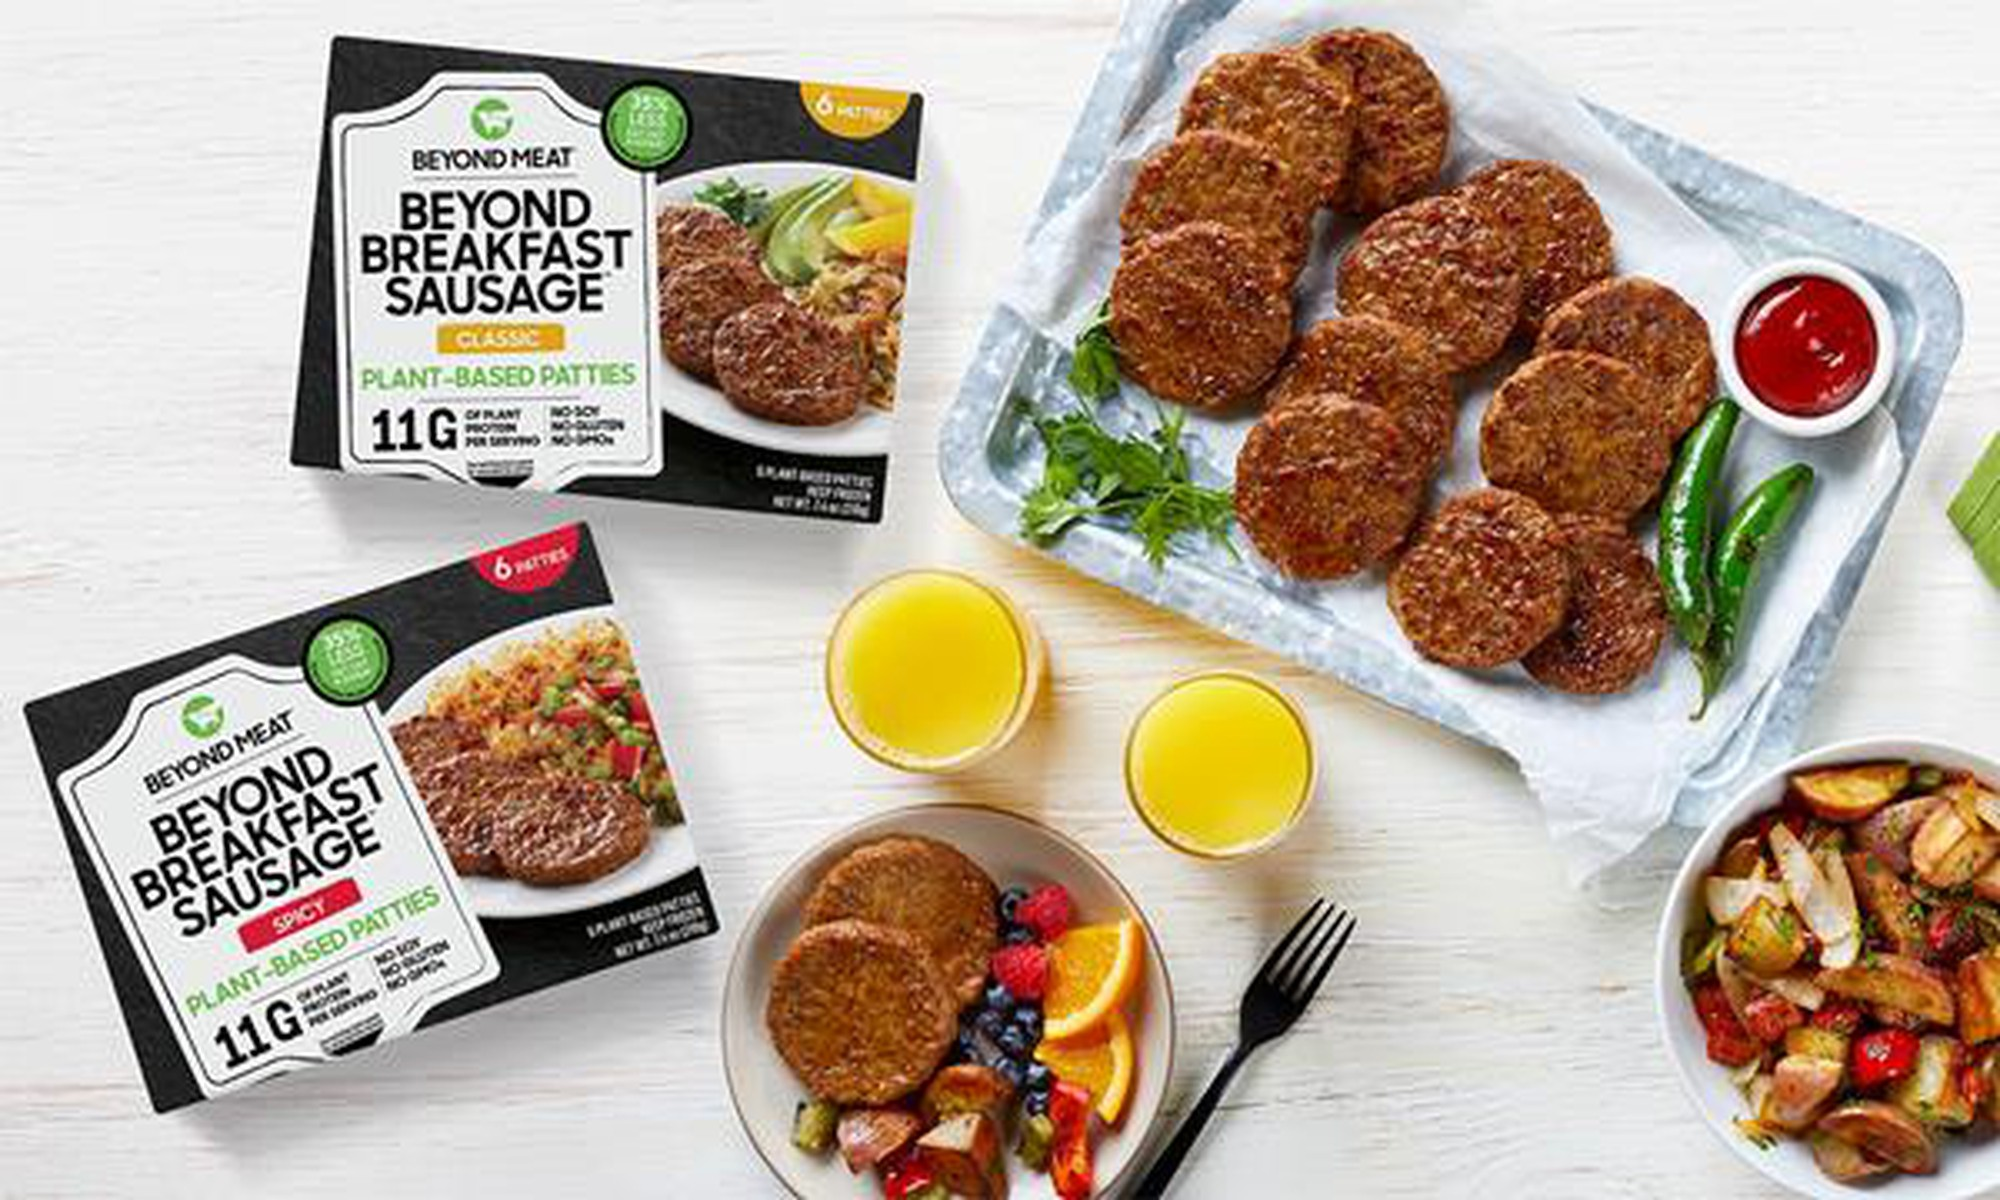 Beyond Meat Rolls Out Breakfast Sausages Nationwide超越肉类在全国范围内推出早餐香肠